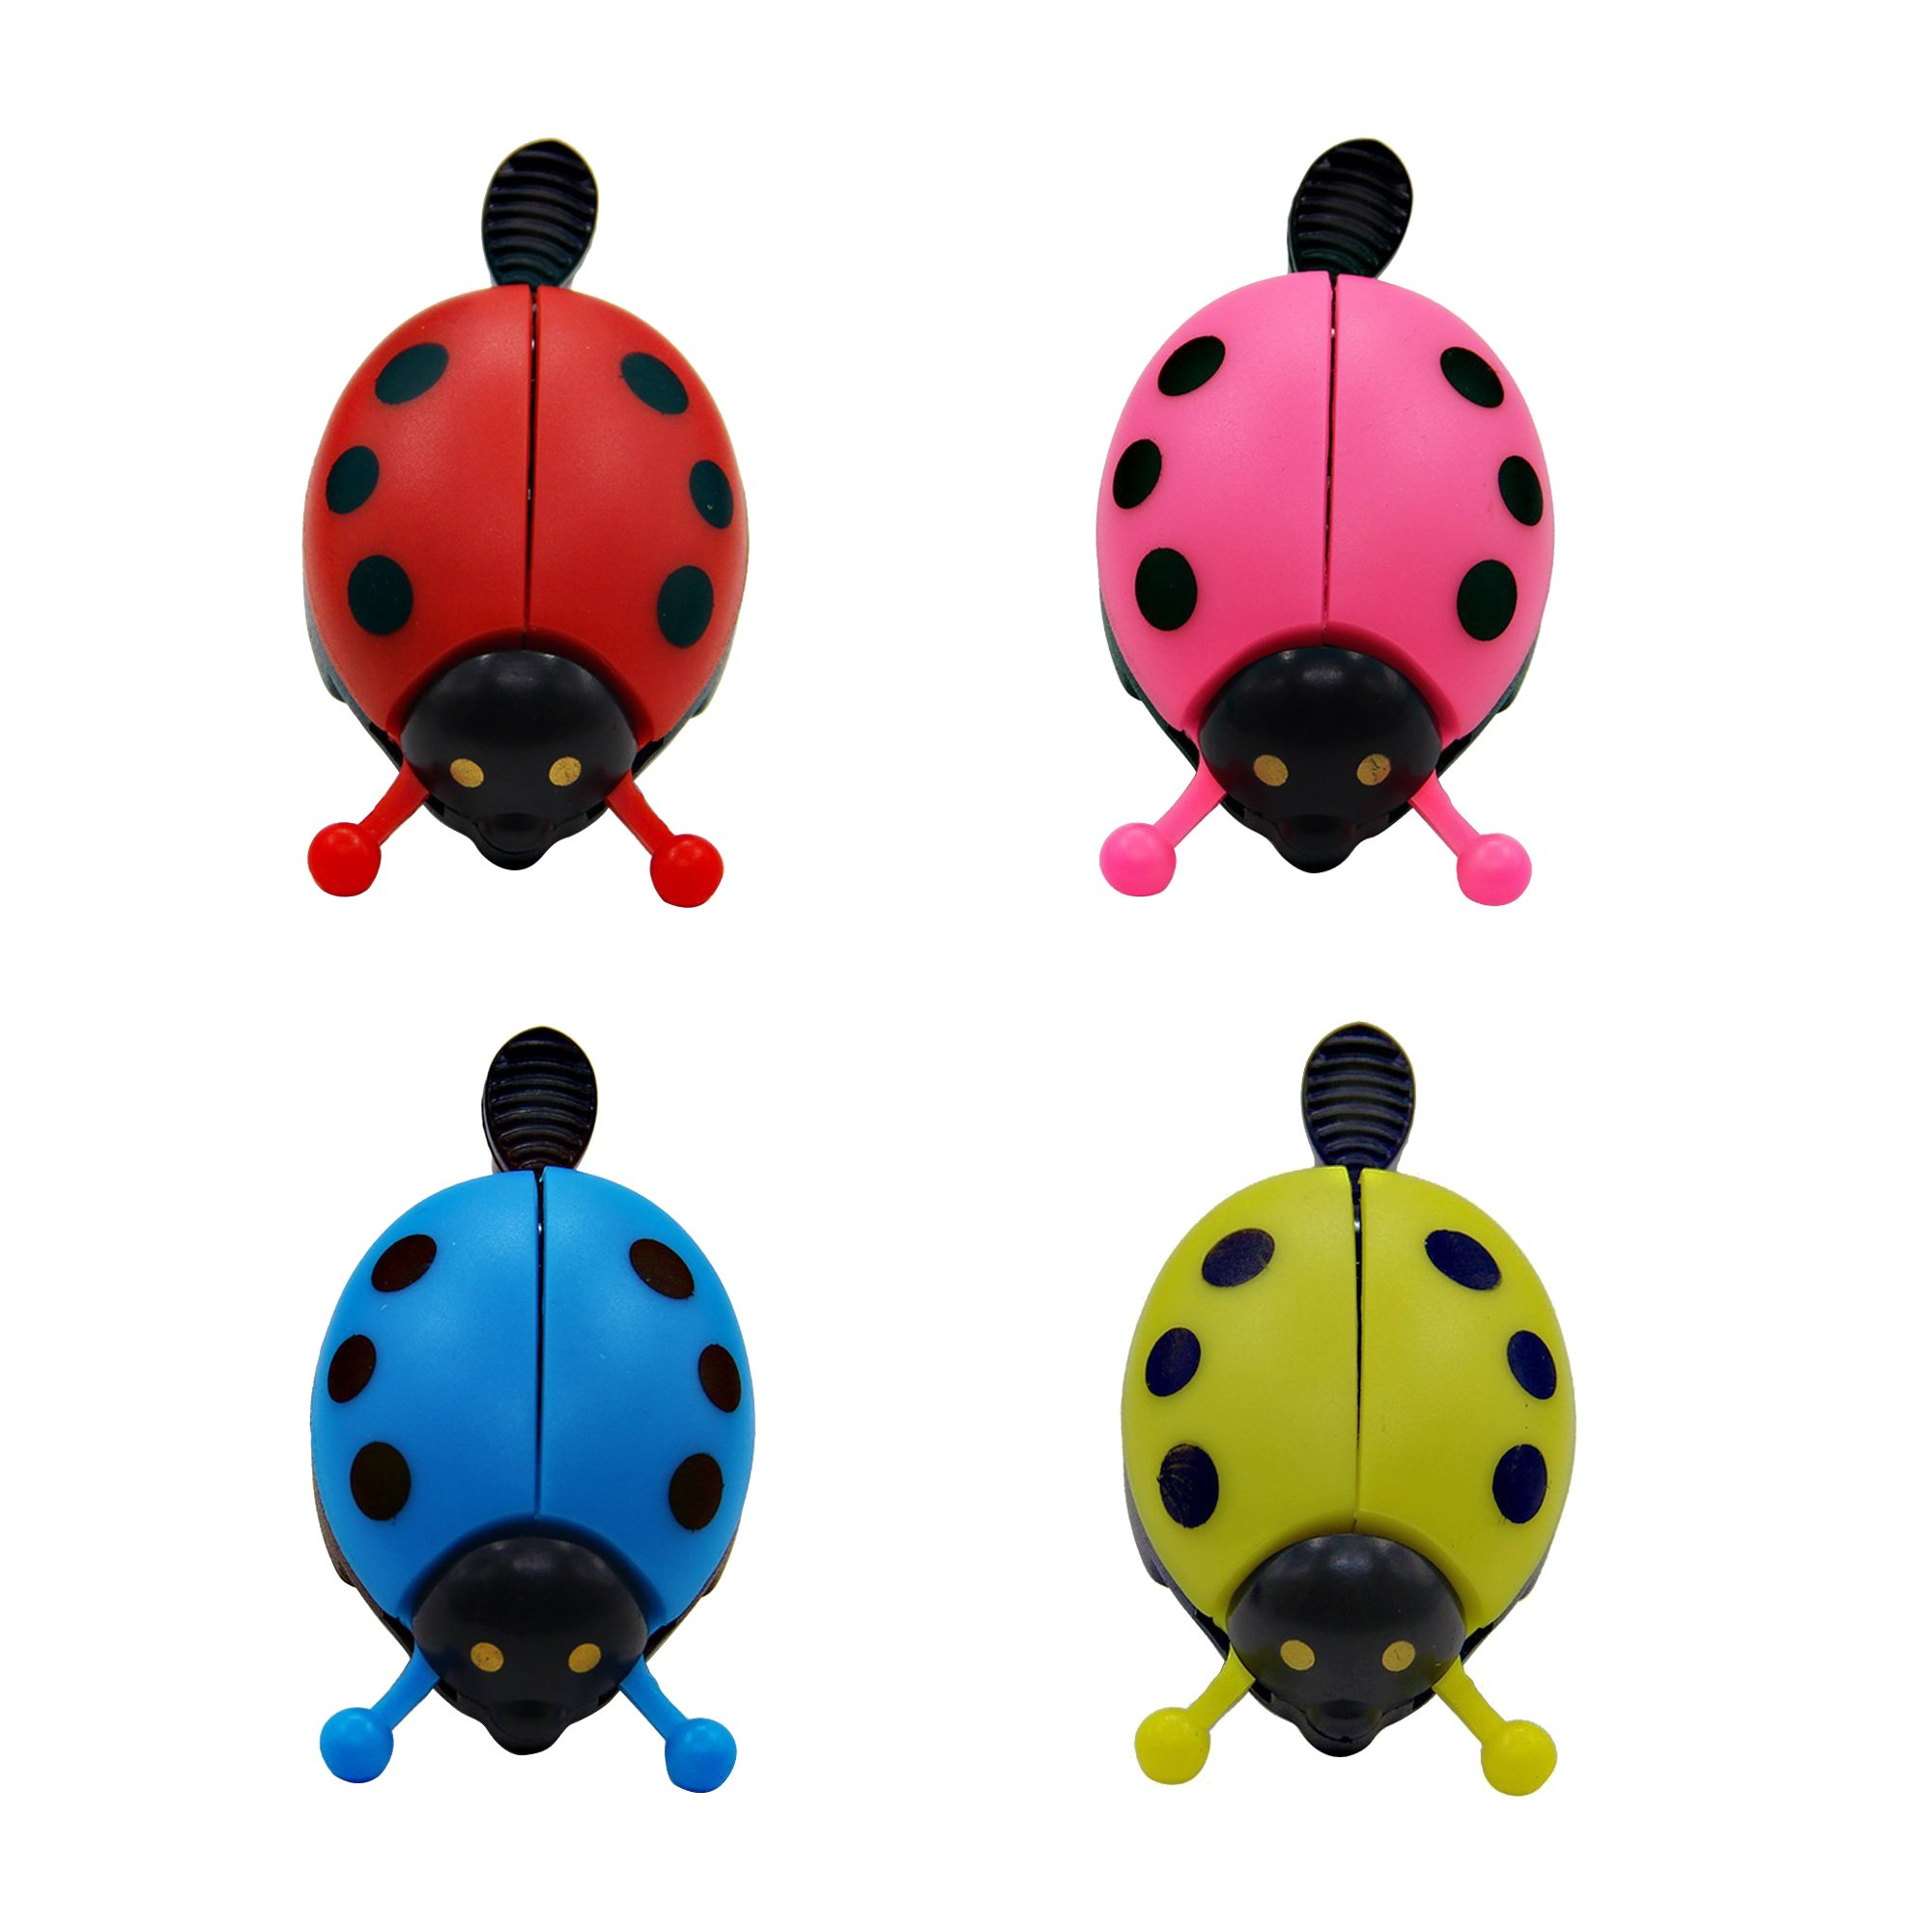 SkyCooool 4 Pcs Kids Bike Bell, Cute Ladybug Bicycle Warning Bell for Boys Girls Toddler, Red, Rose Red, Blue and Yellow